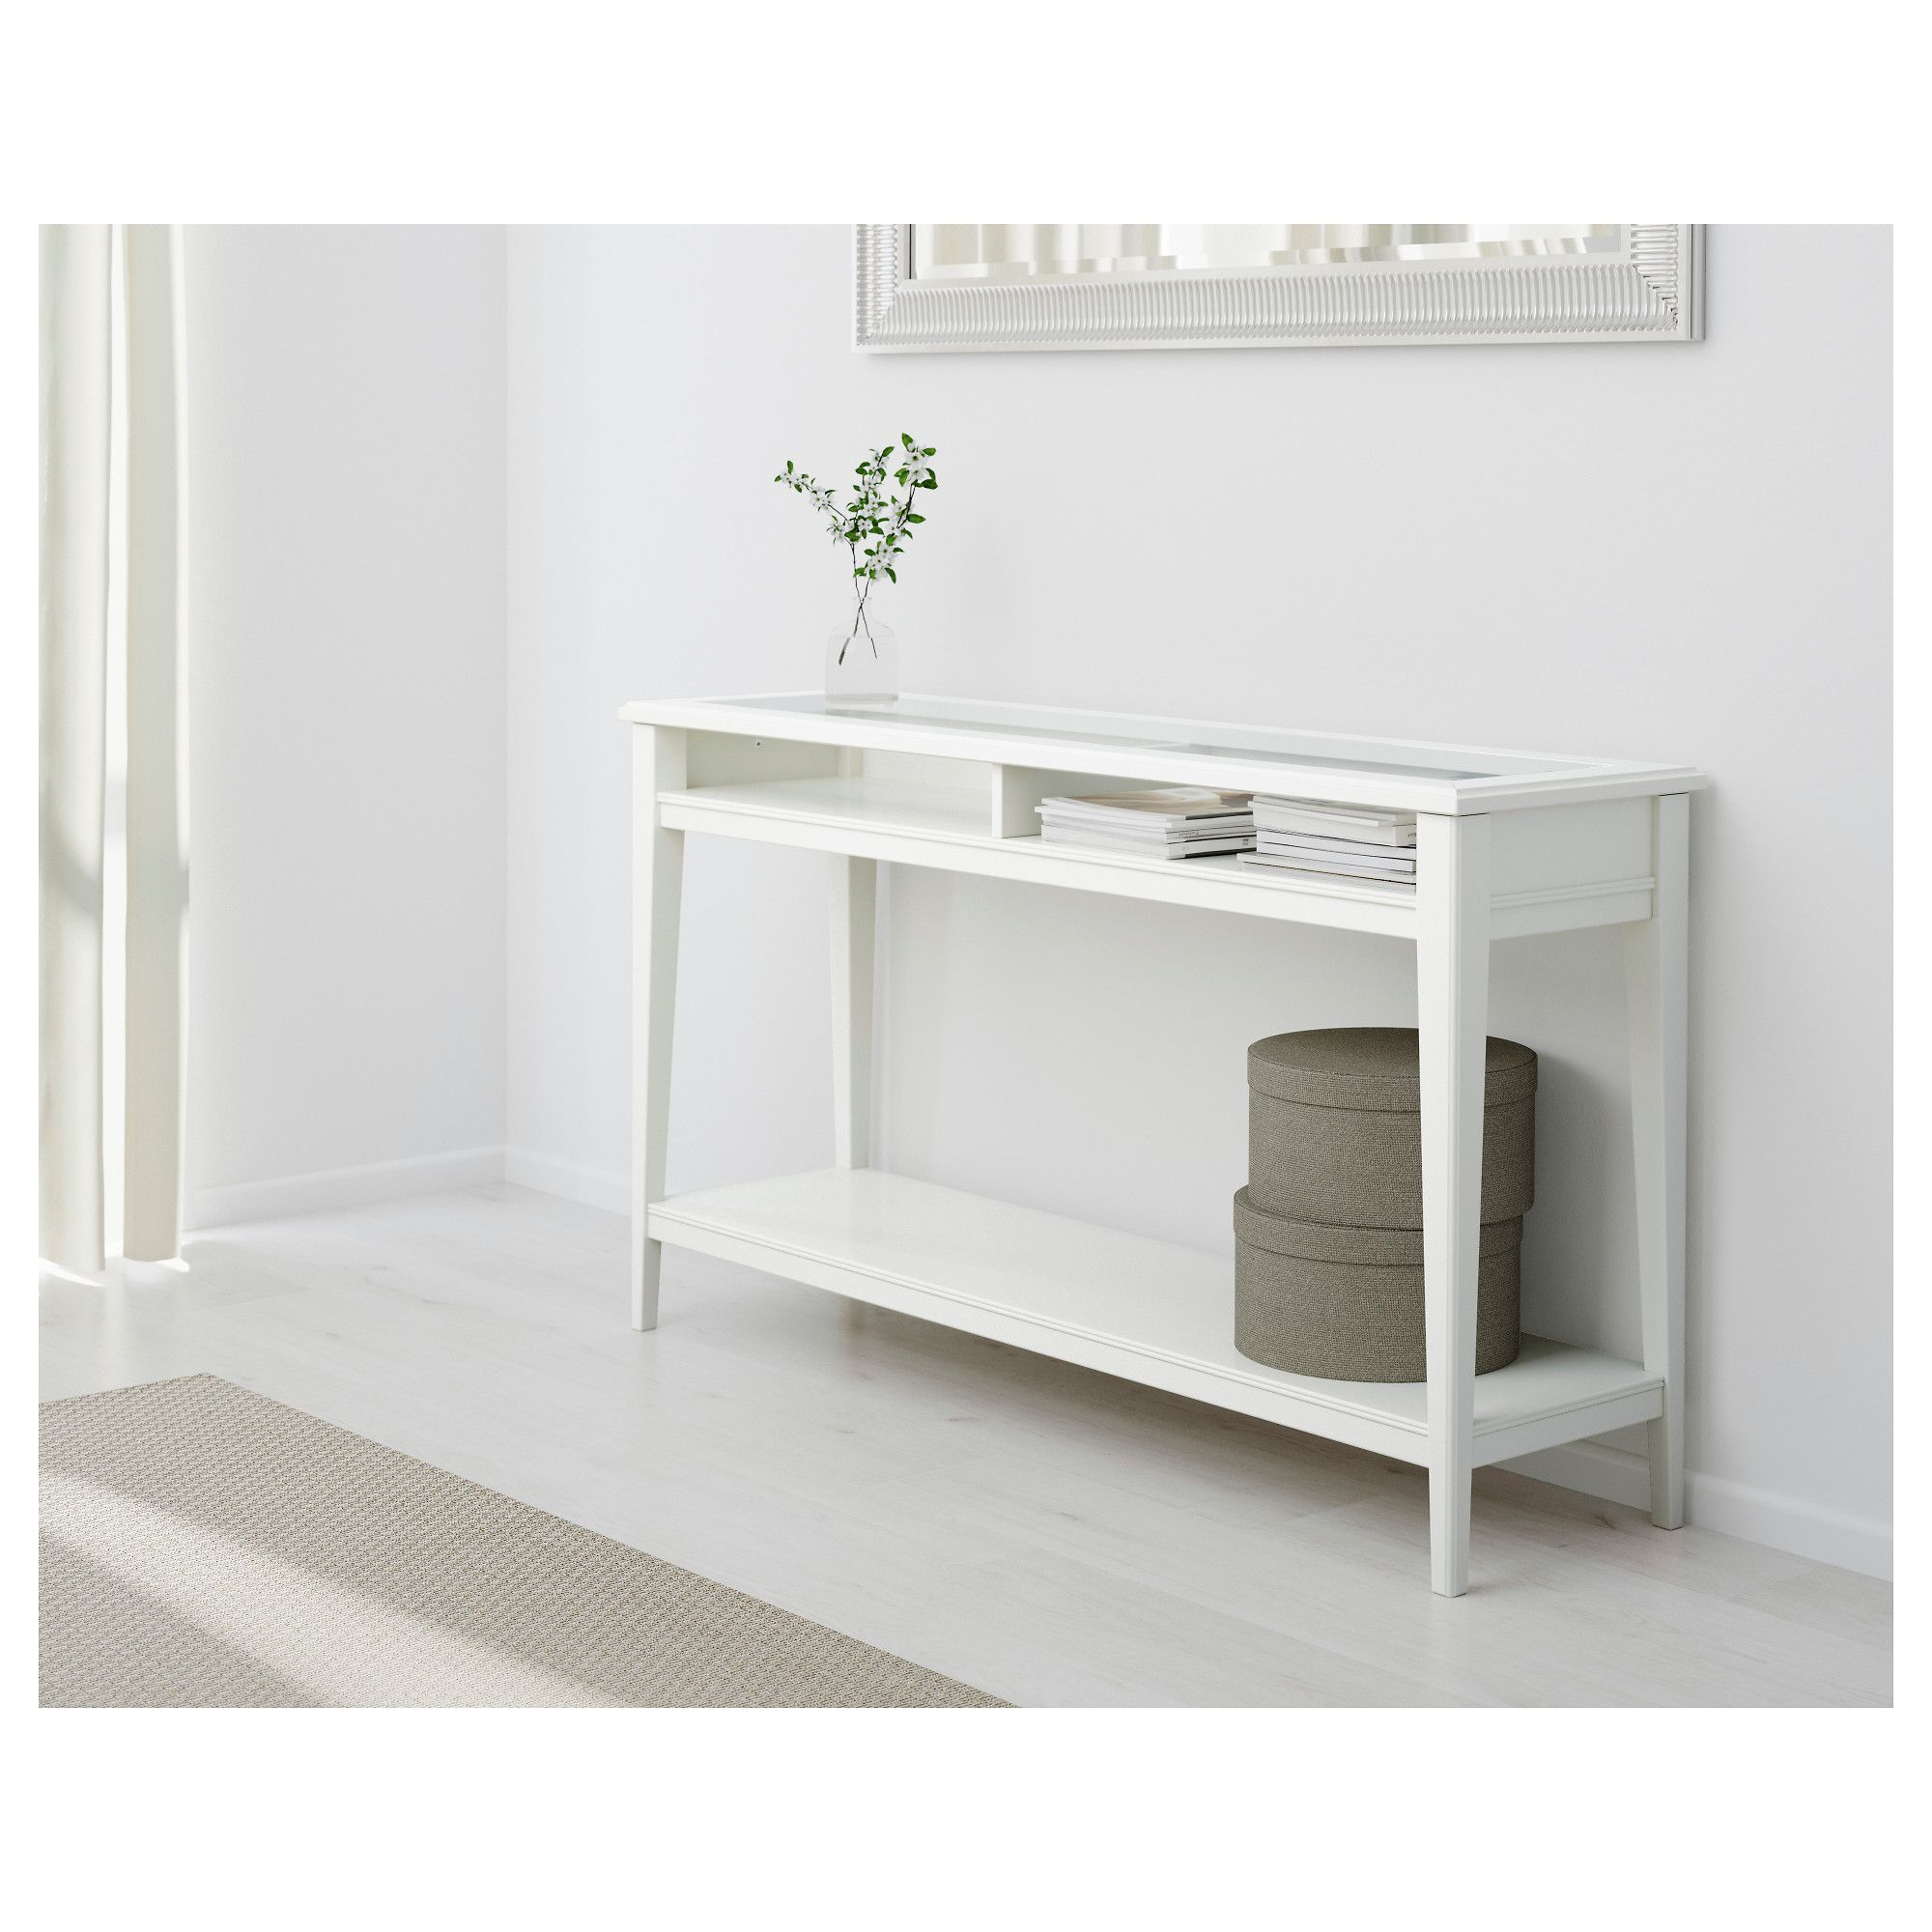 Liatorp Console Table White Glass 52 3 8x14 5 8 133x37 Cm White Console Table Ikea Console Table White Sofa Table